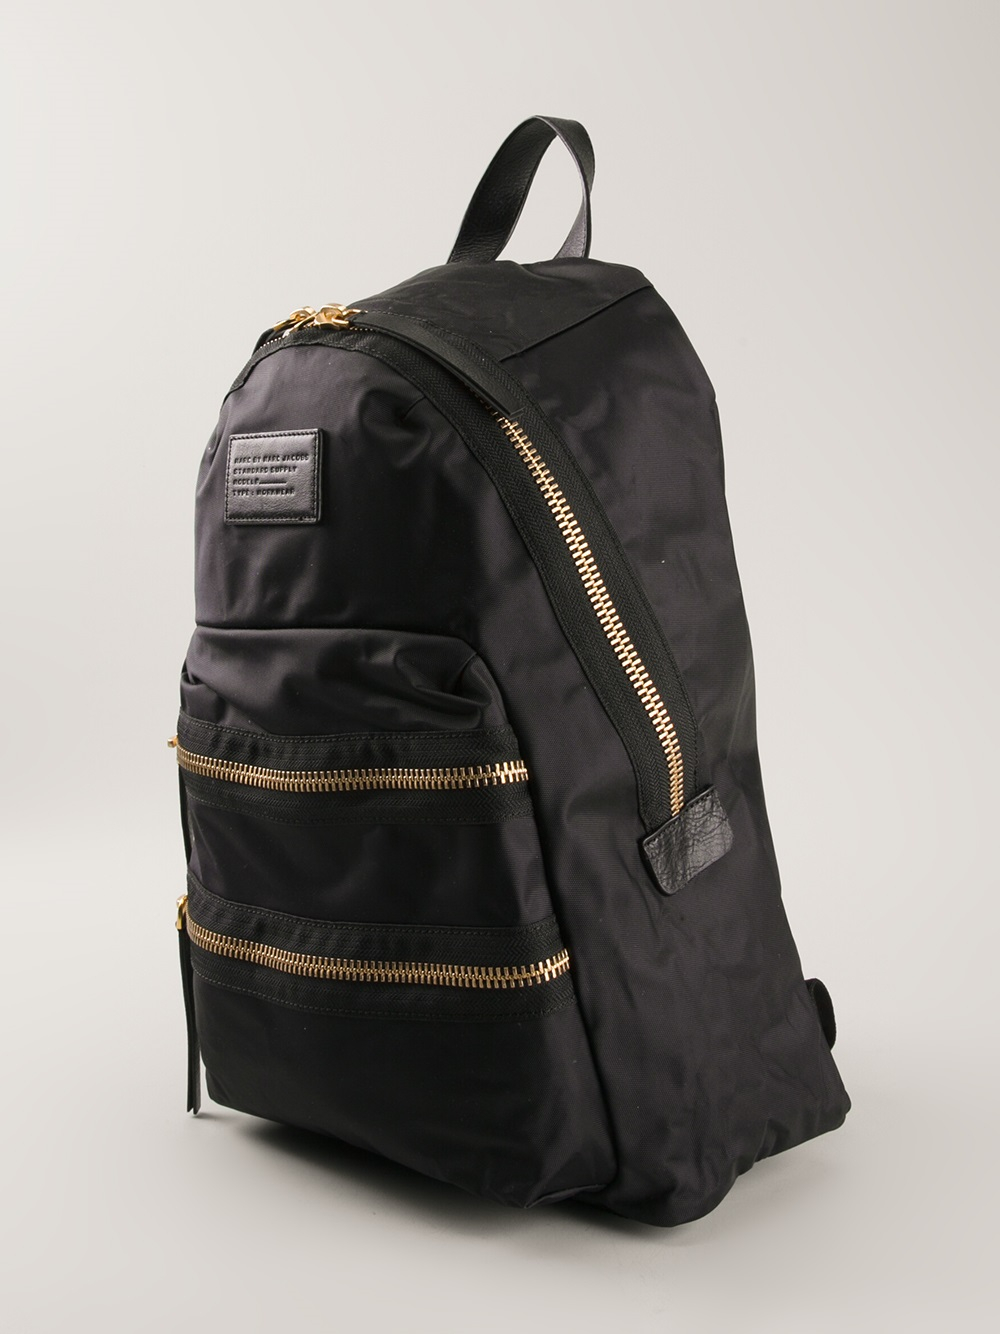 marc by marc jacobs 39 domo arigato packrat 39 backpack in black lyst. Black Bedroom Furniture Sets. Home Design Ideas